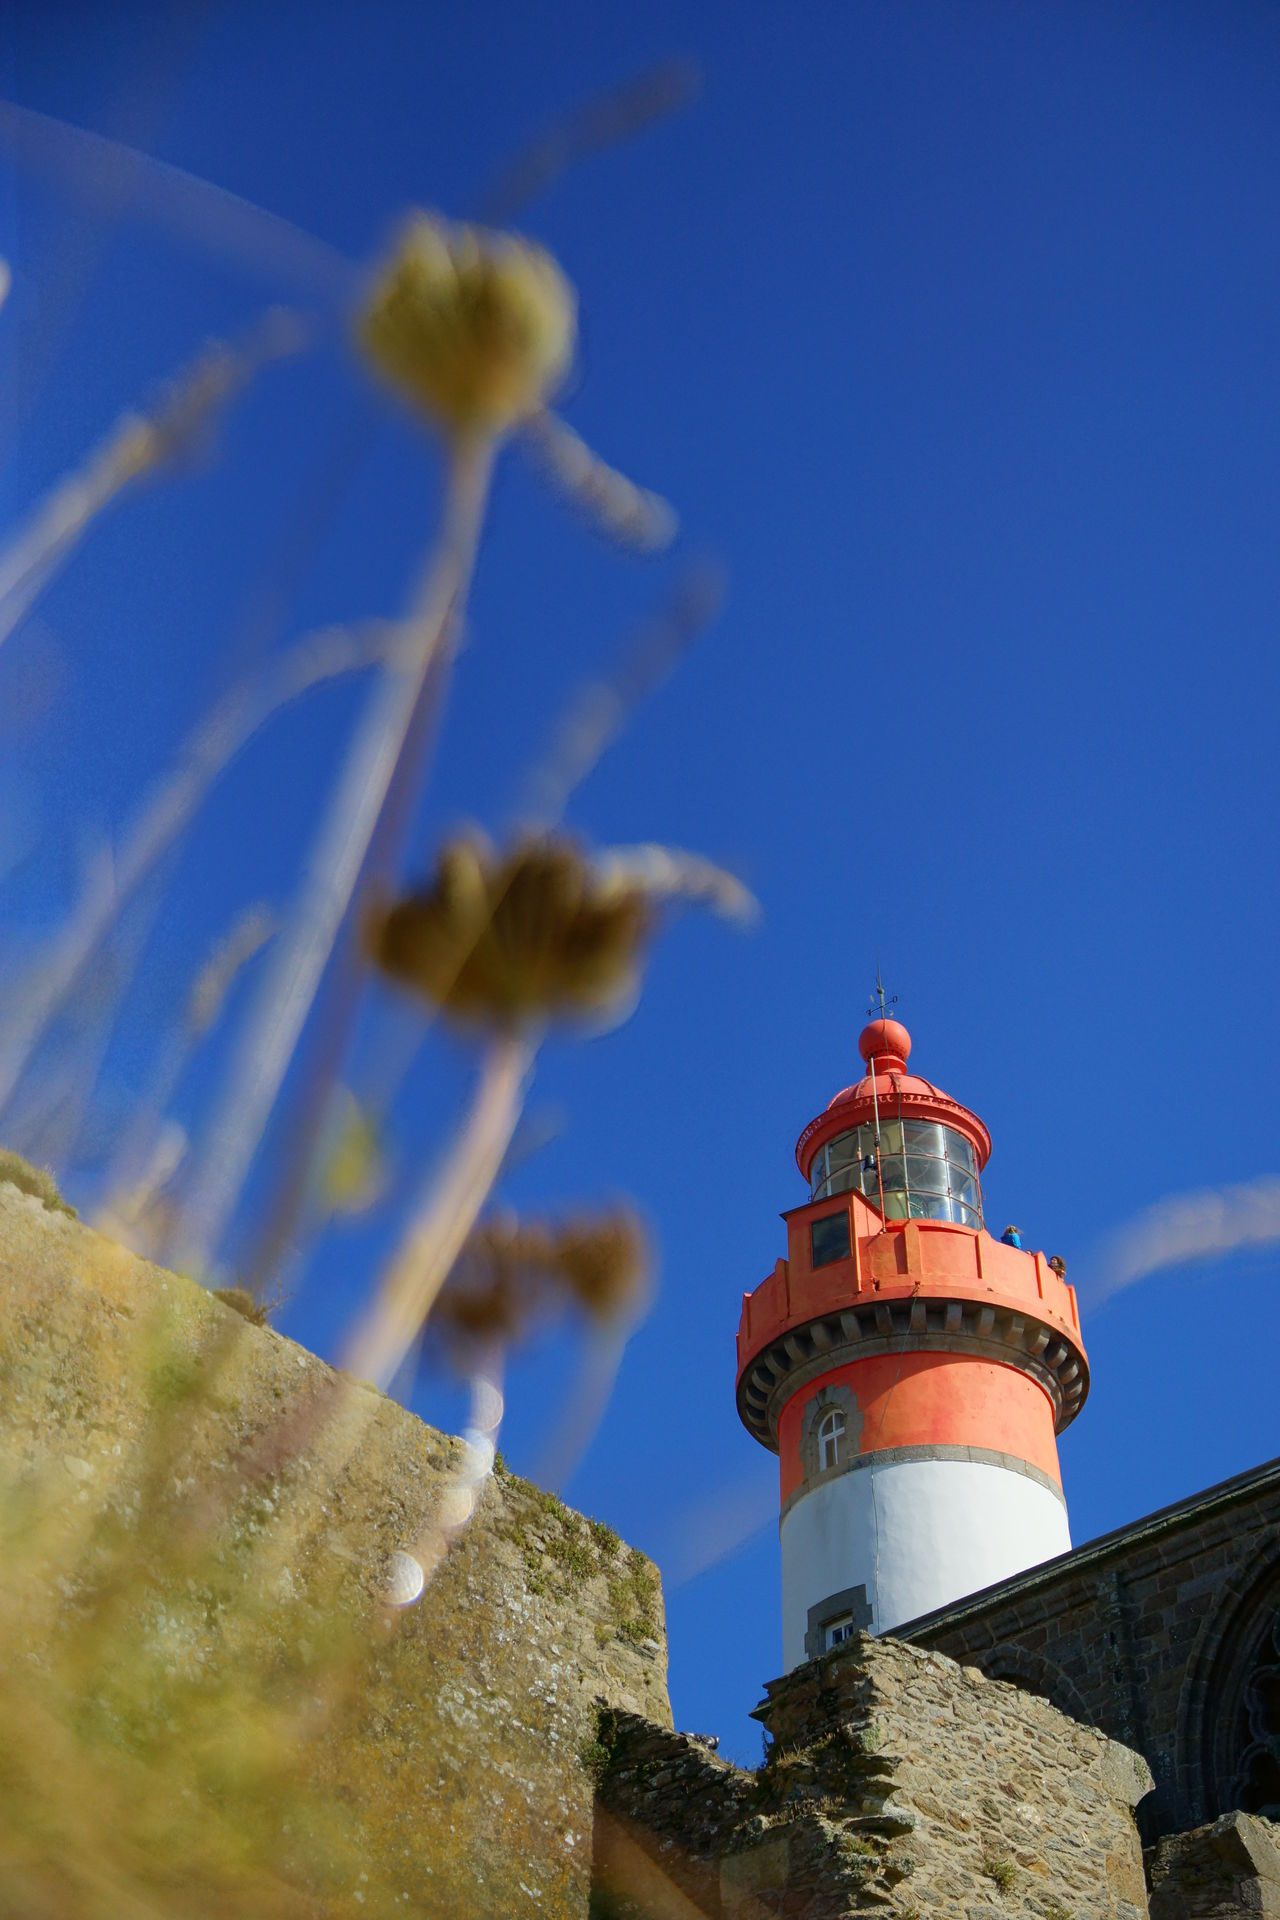 Saint Mathieu Lighthouse with Sea Thrifts Architecture Blue Blue Sky Brittany Building Exterior Built Structure Clear Sky Day France Landmark Lighthouse Low Angle View Maritime Maritime Photography Nature No People Outdoors Ruin Saint Mathieu Saint Mathieu Lighthouse Sea Thrift Selective Focus Sky Summer Wall